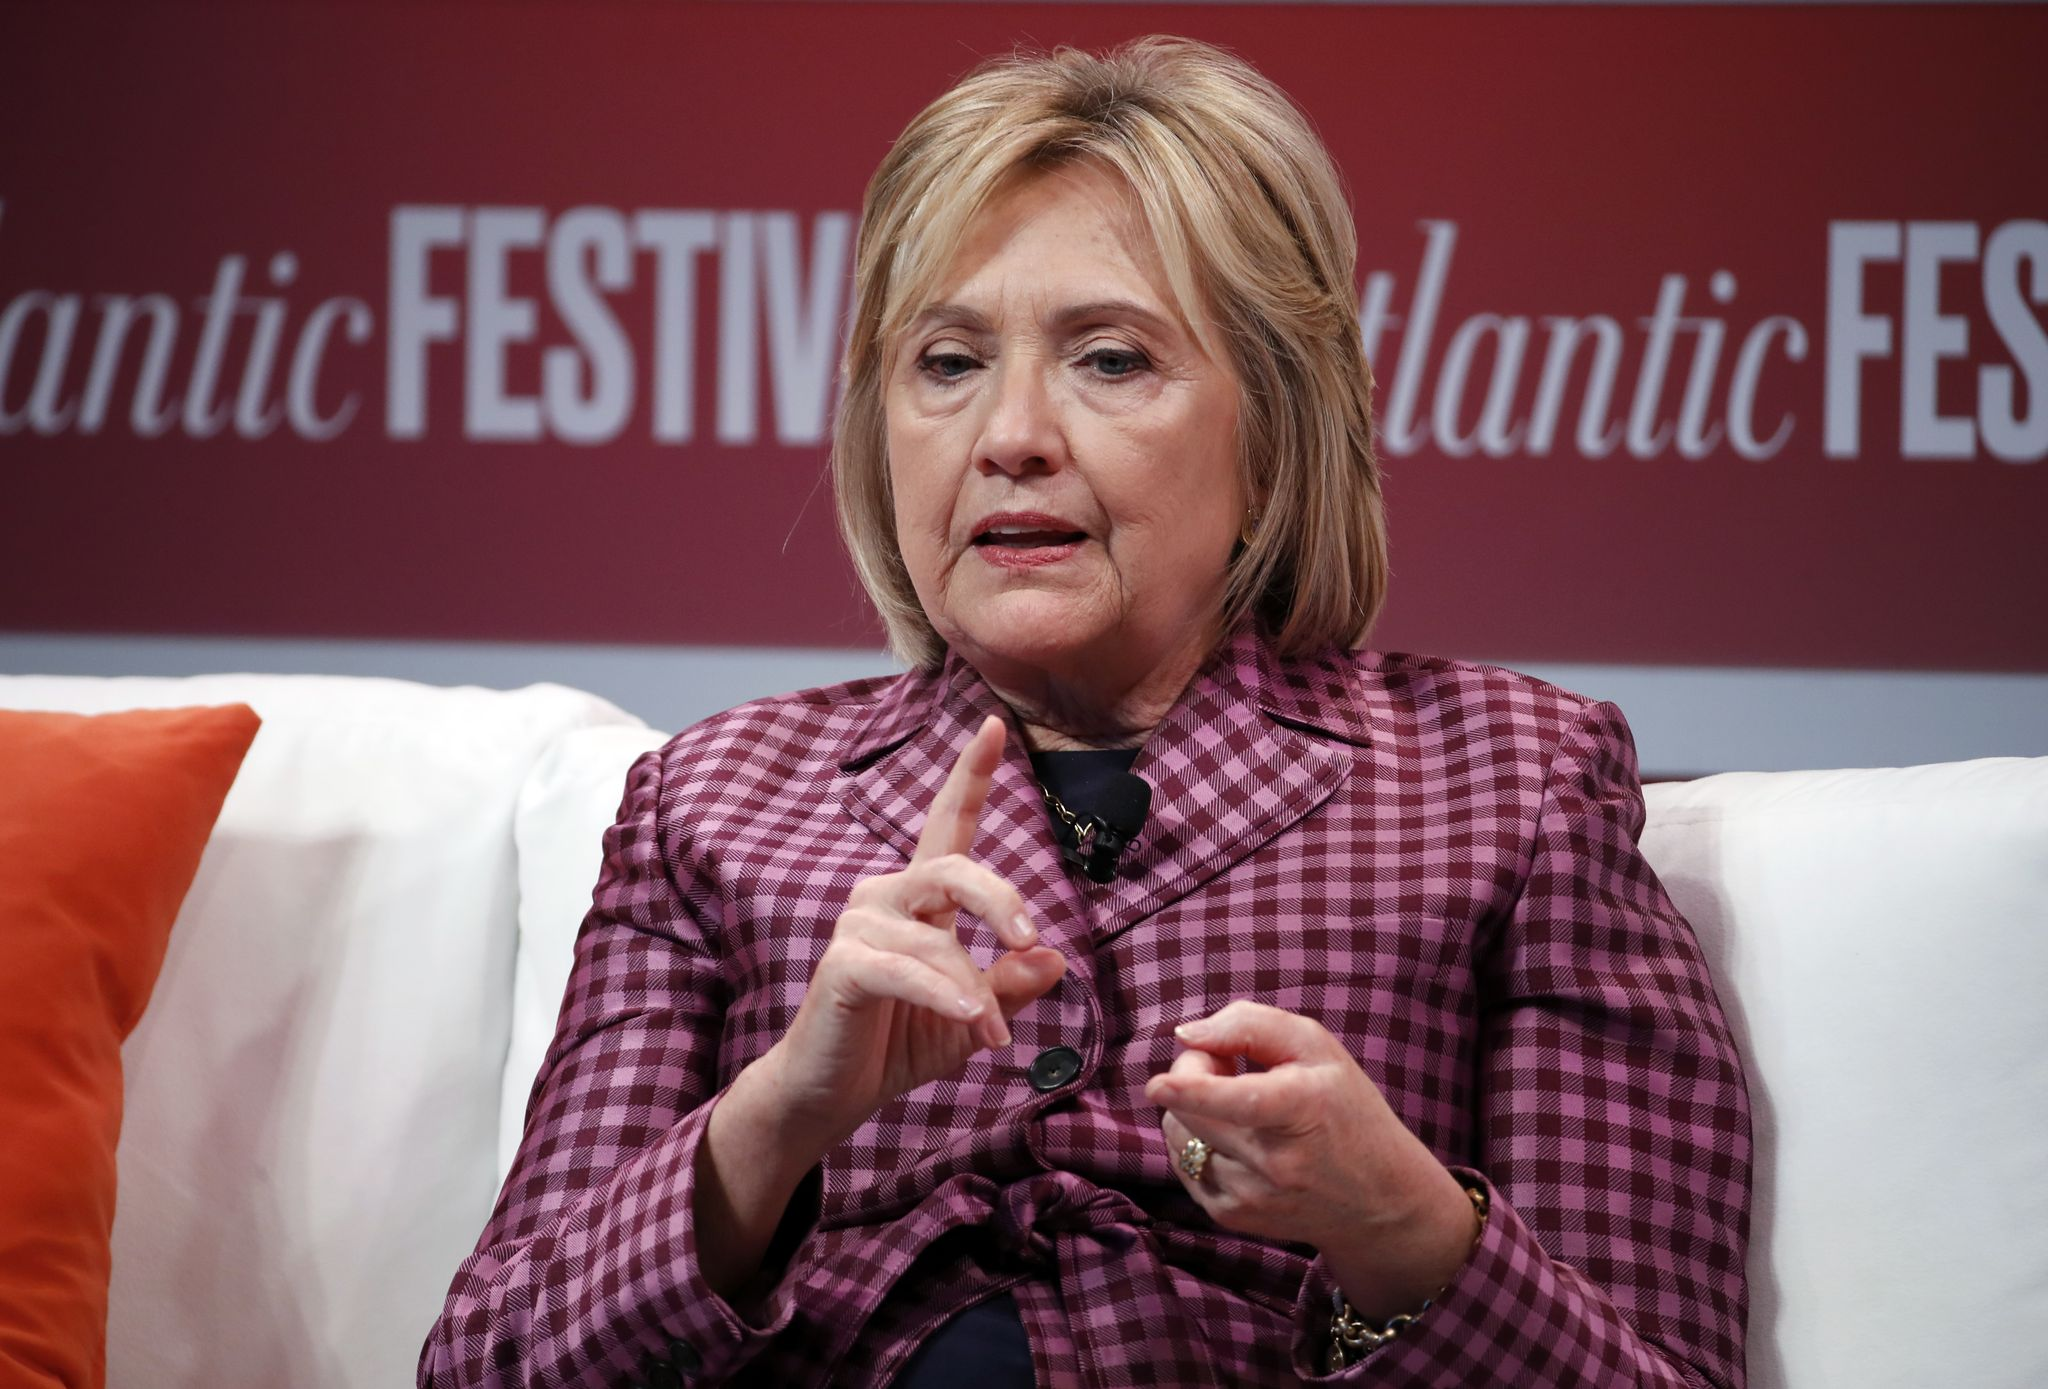 Hillary Clinton says 'civility can start again' when Democrats retake Congress after midterms